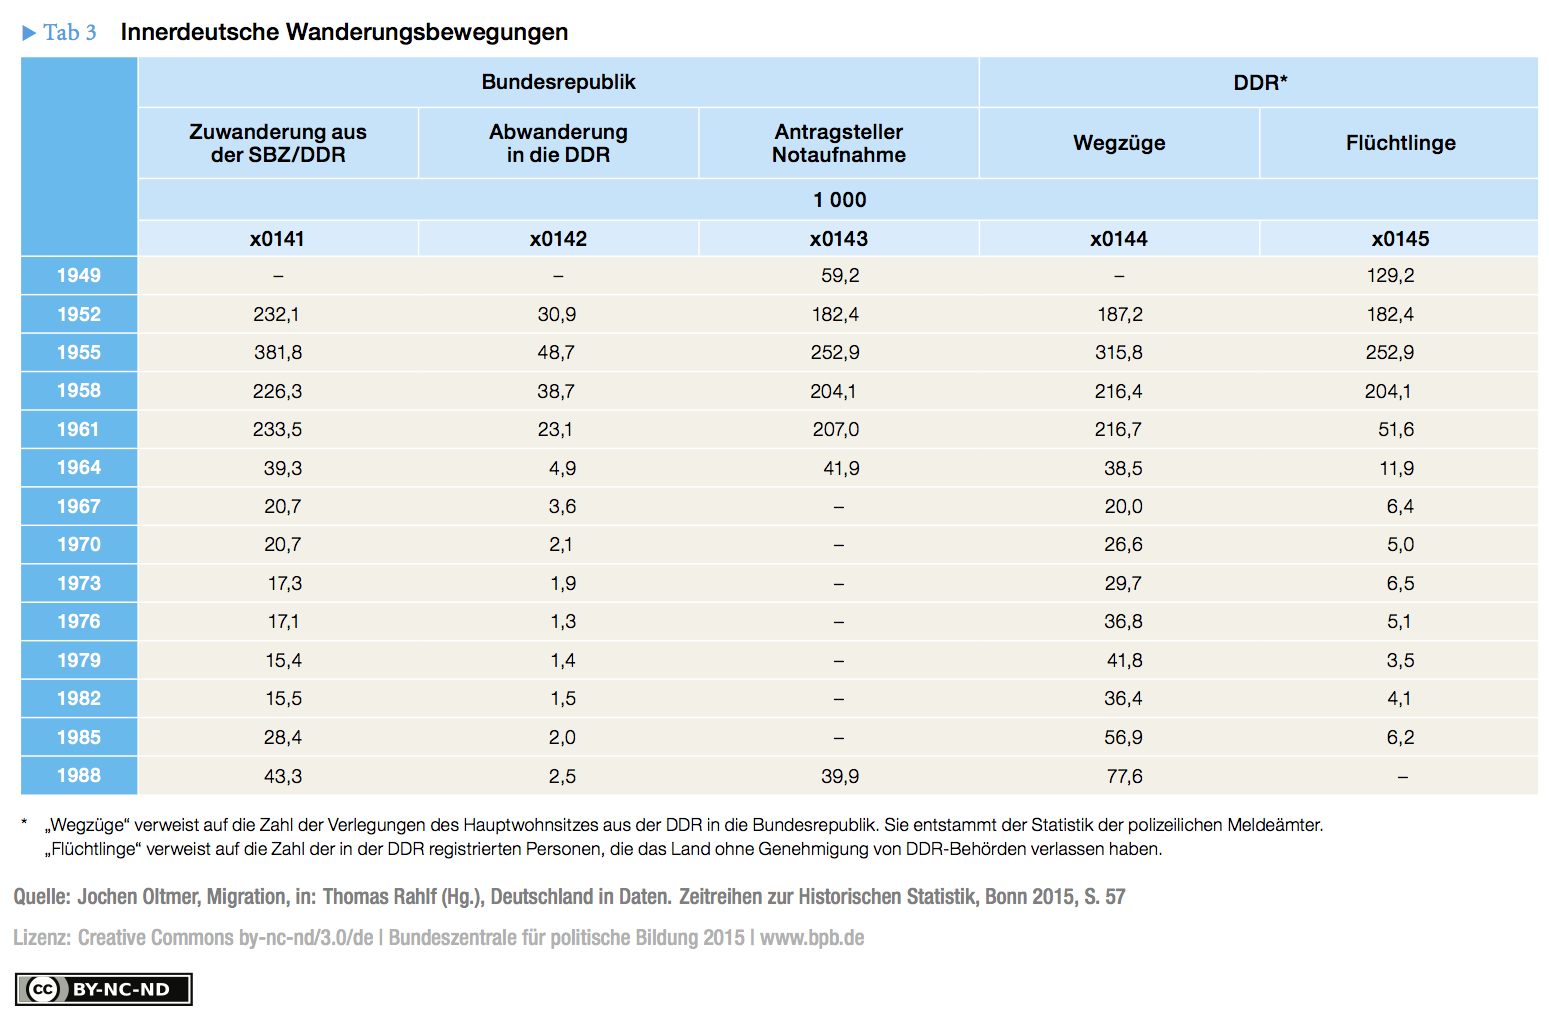 Table 3: Migration within Germany